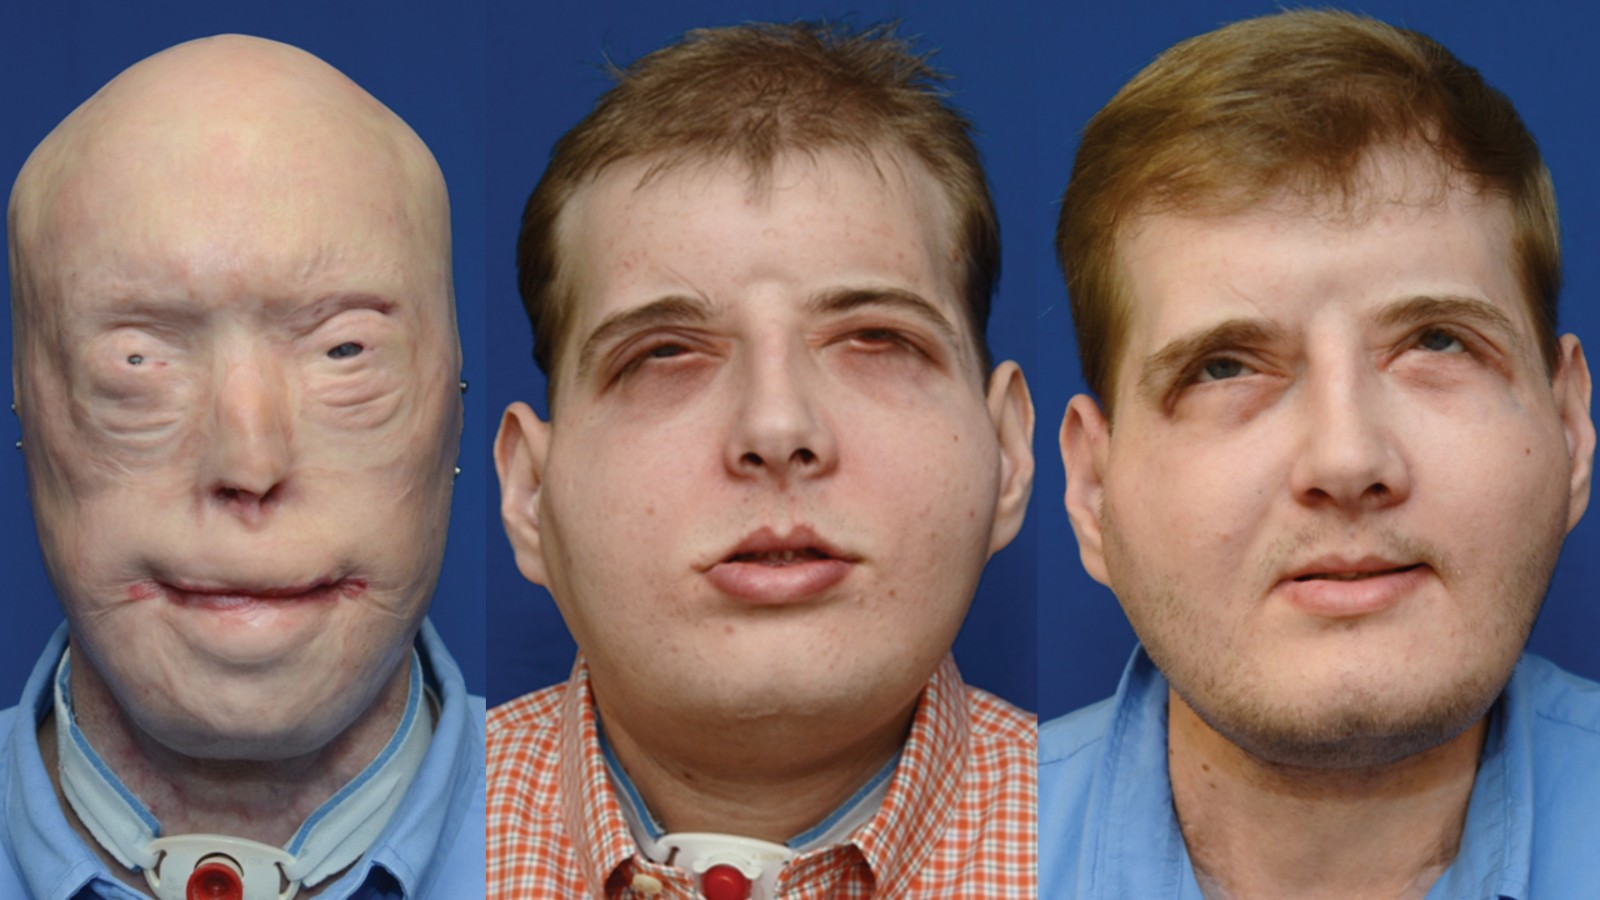 World's first full face transplant